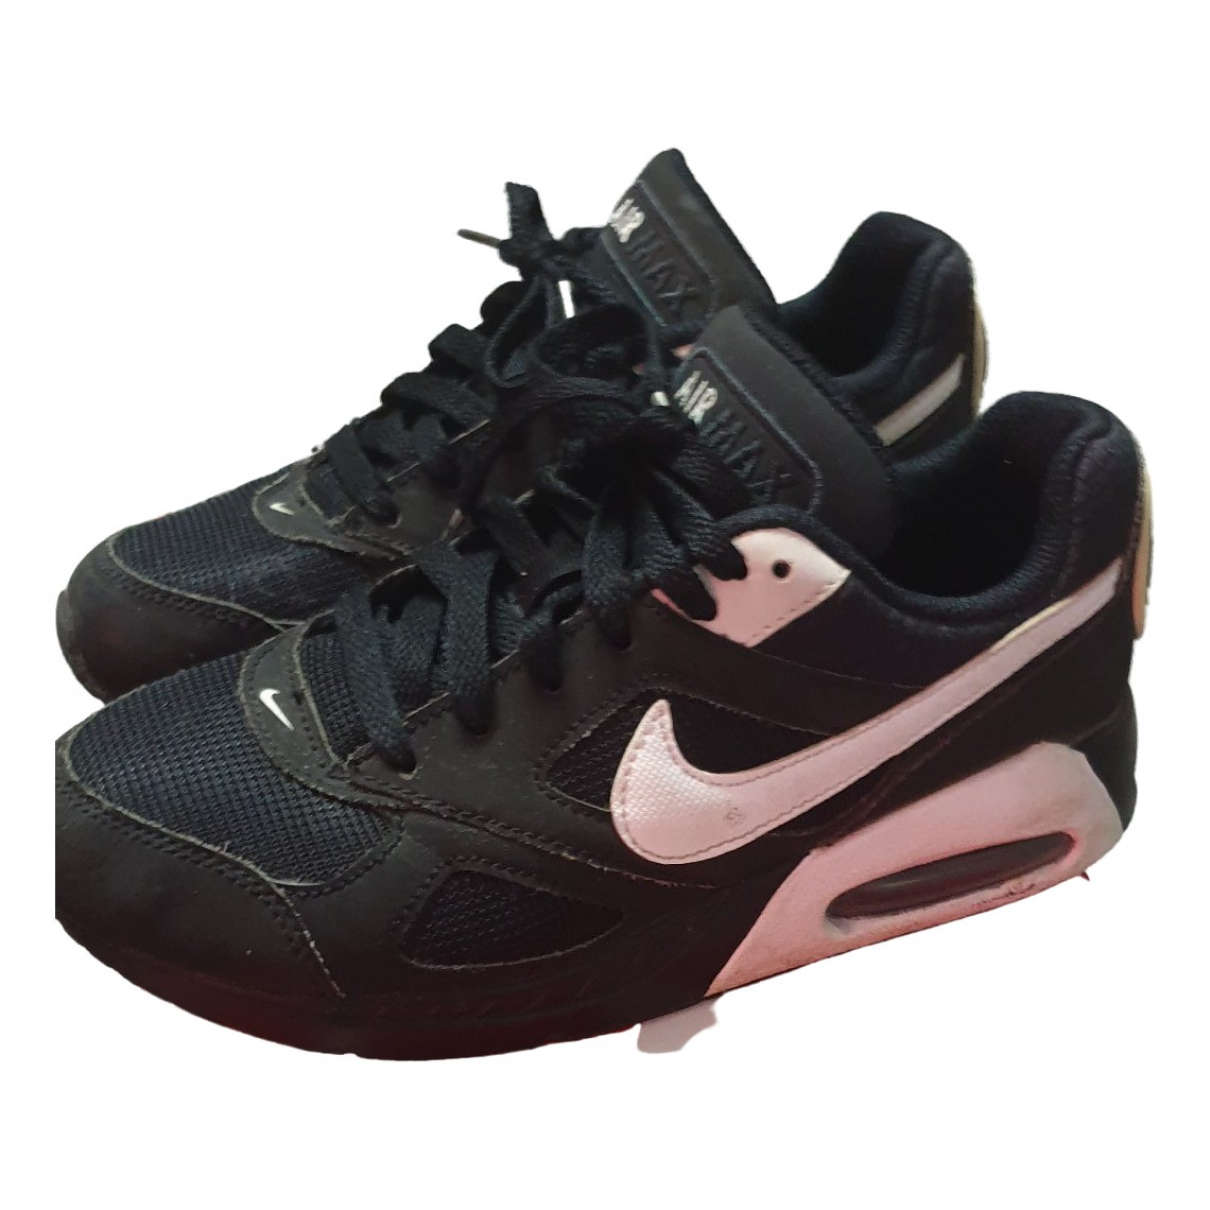 Nike Air Max  Black Leather Trainers for Kids 4.5 US